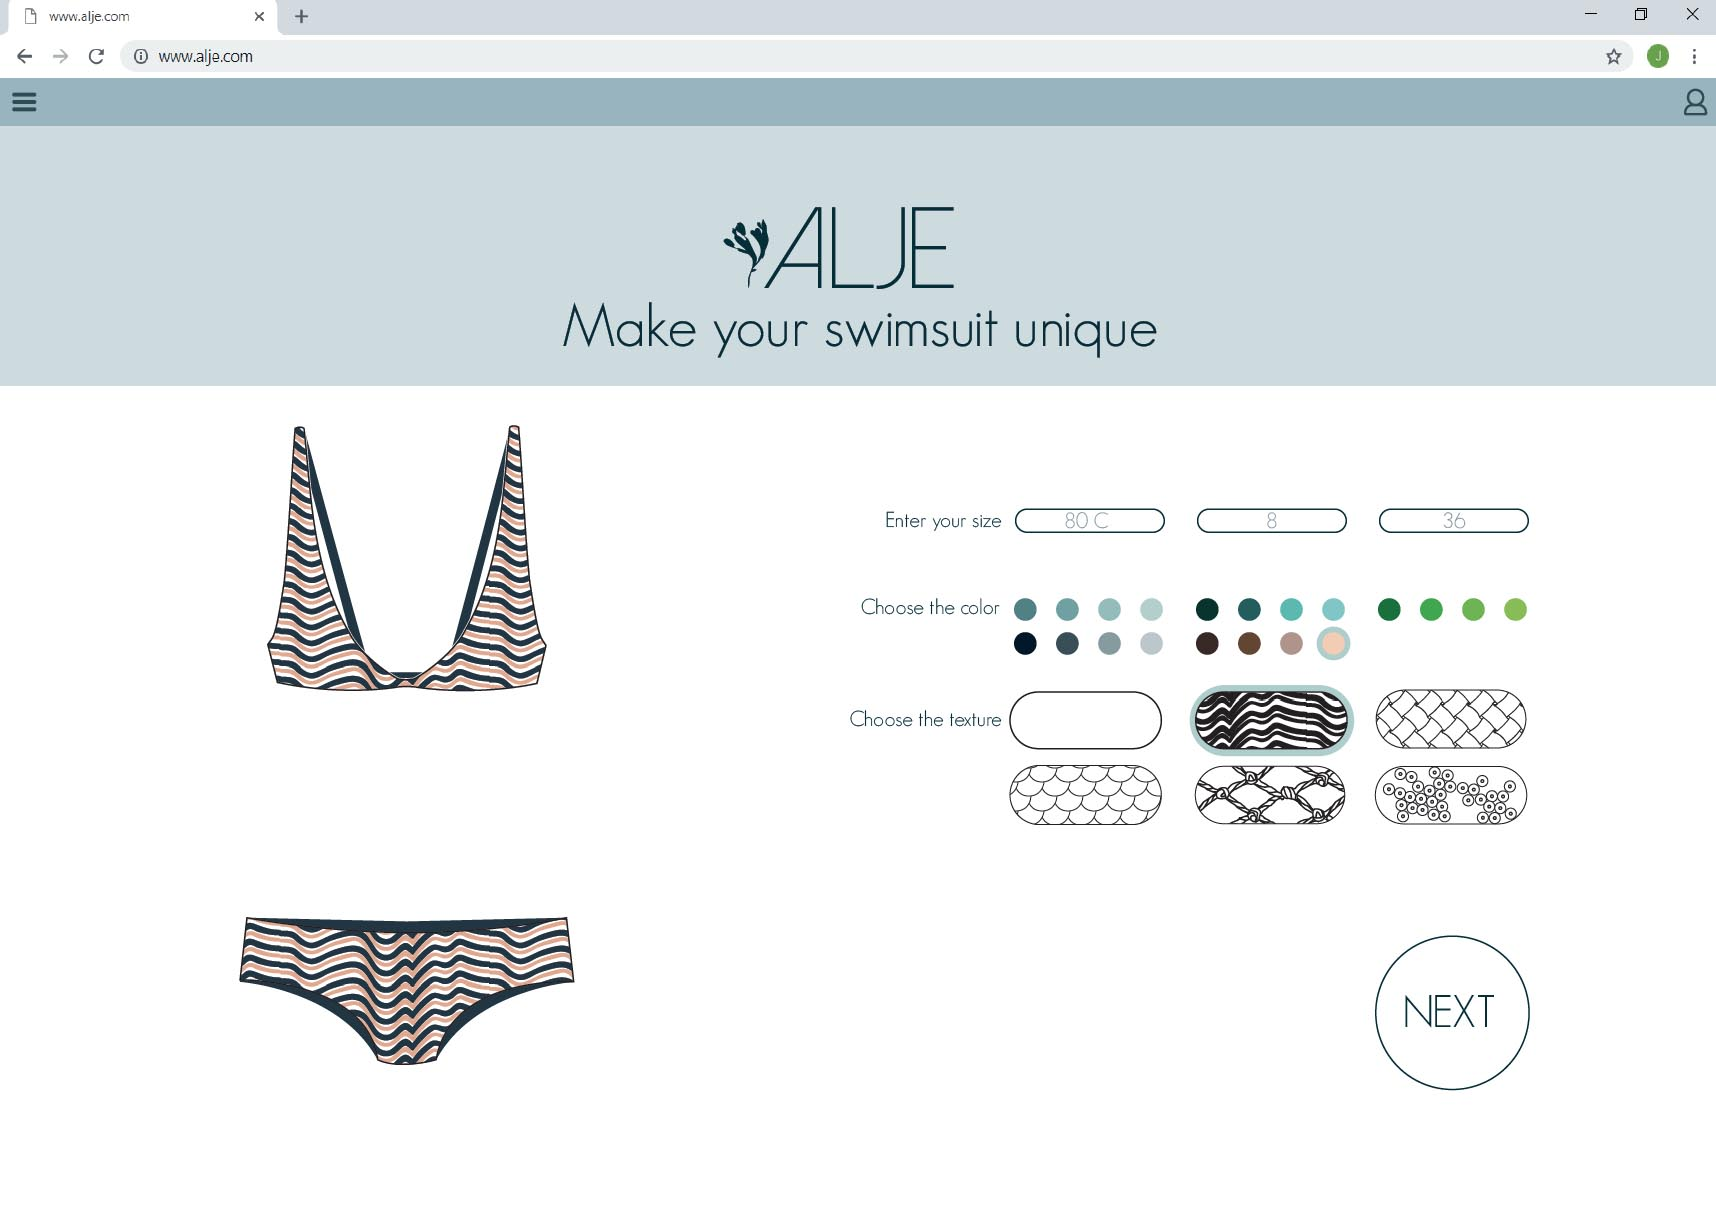 alje website